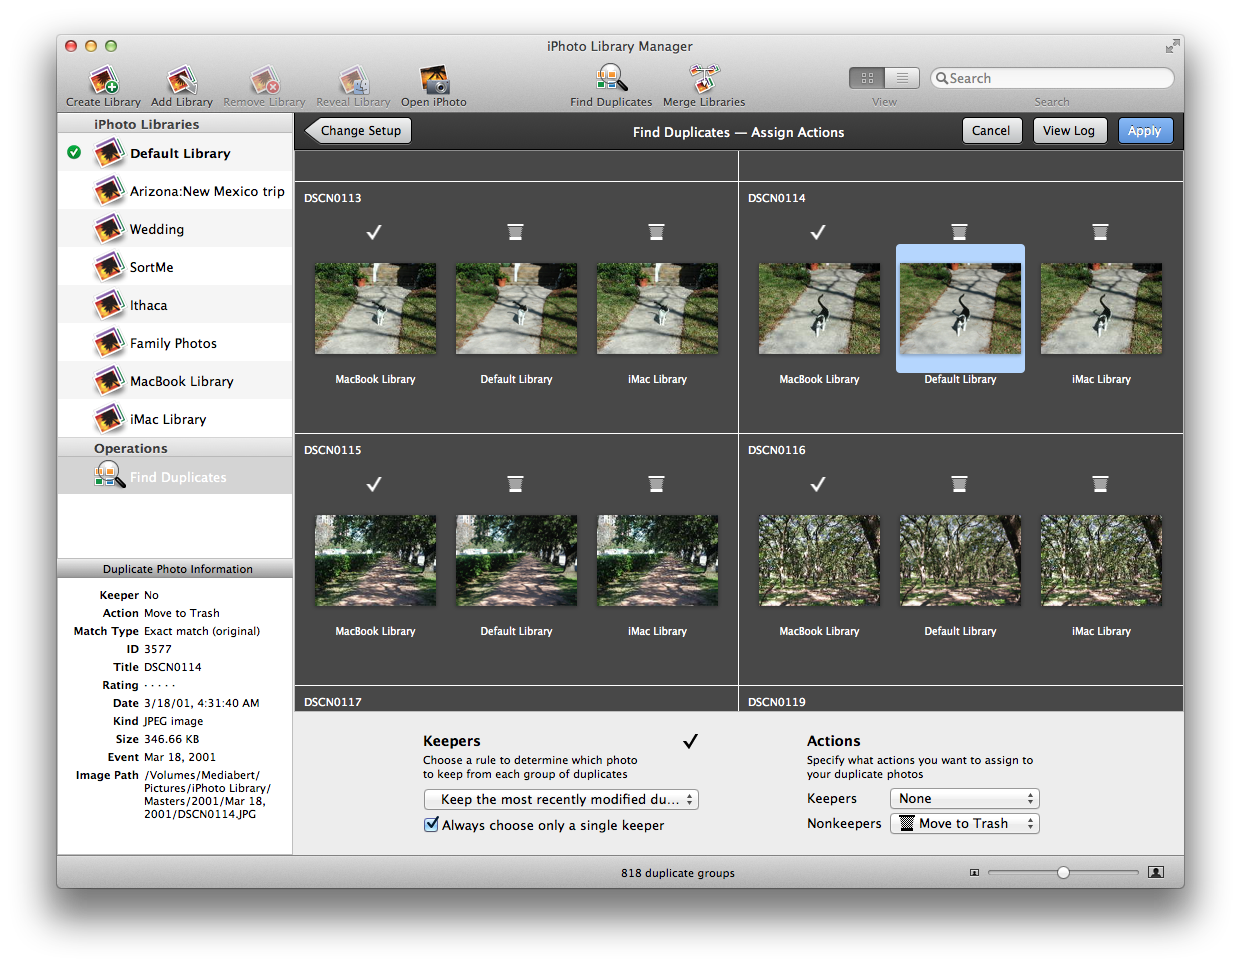 iPhoto Library Manager Help